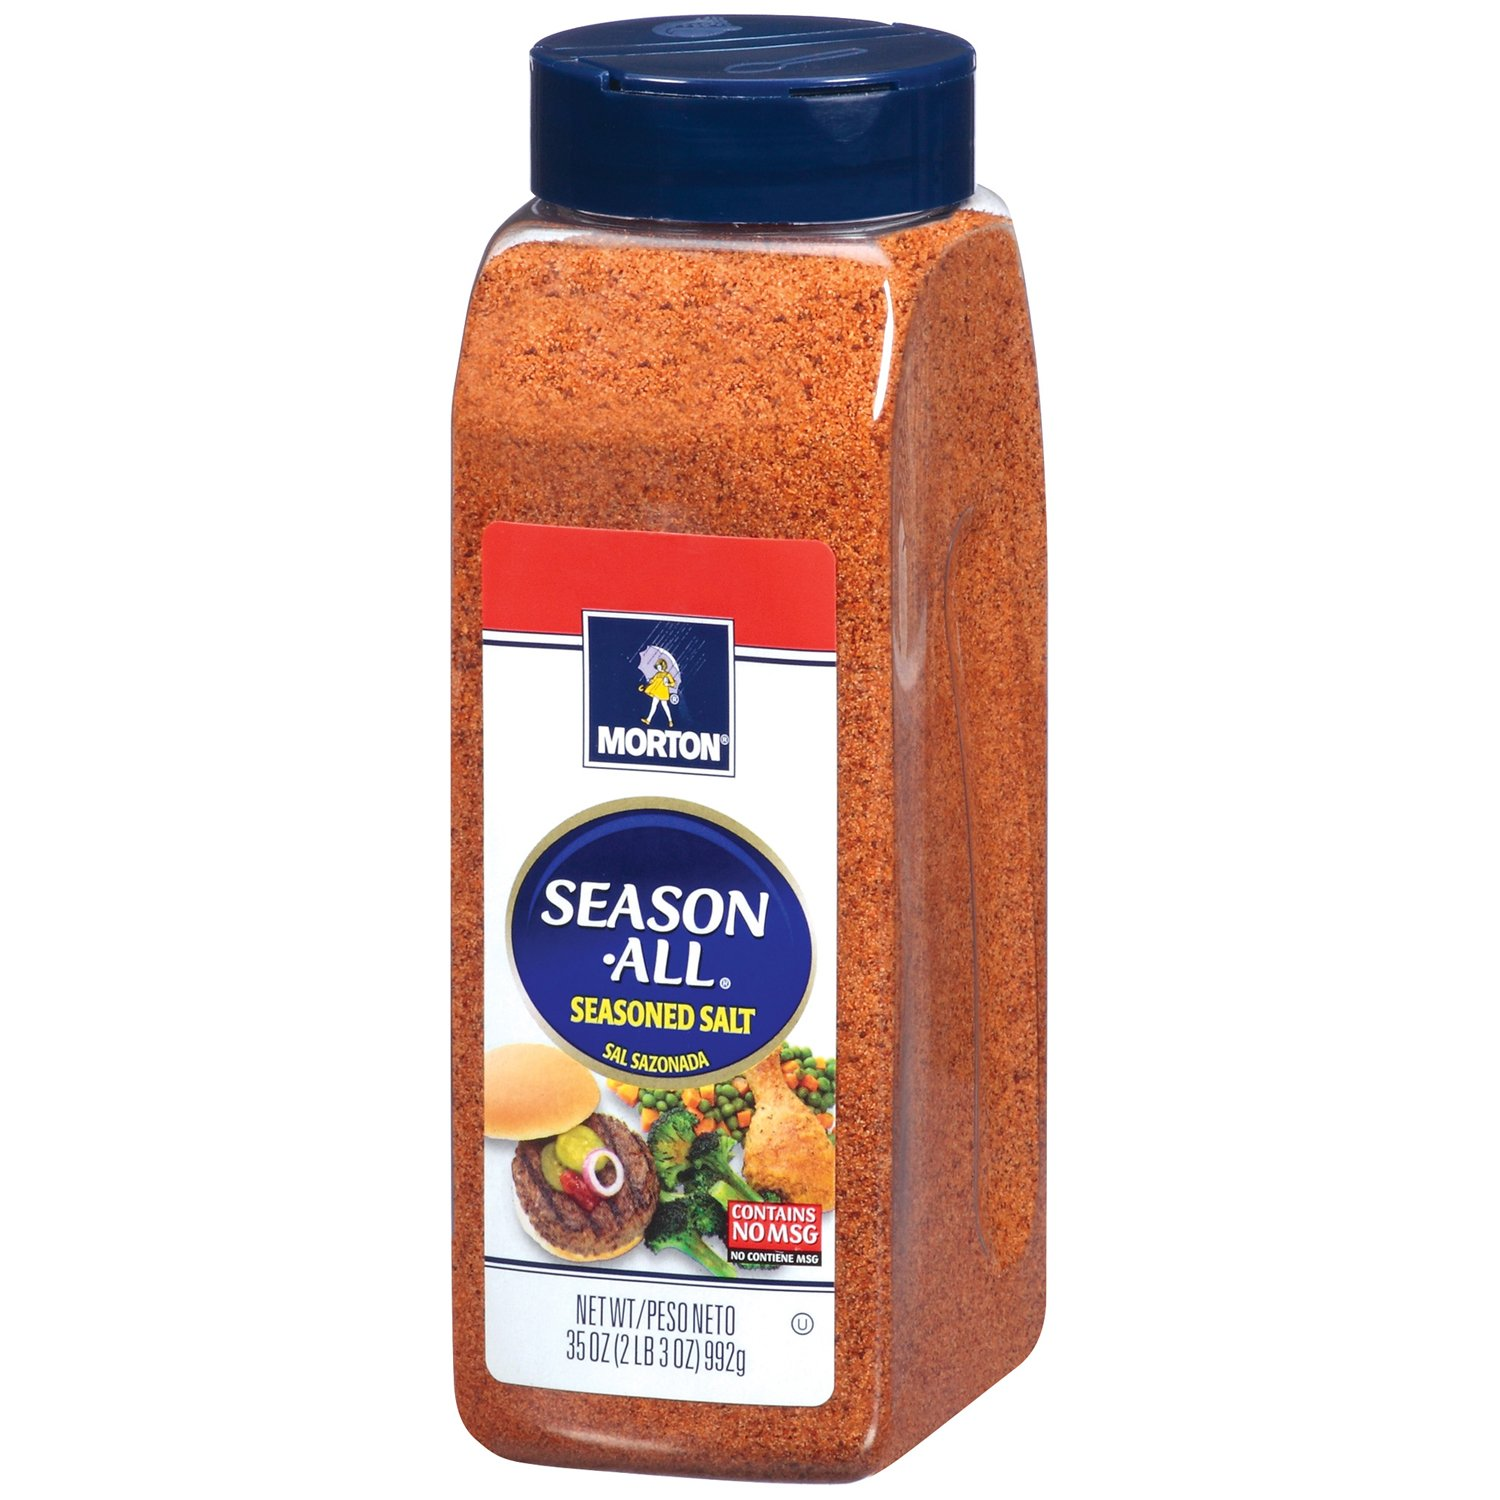 Seasoned Salt Brands Season All Seasoned Salt